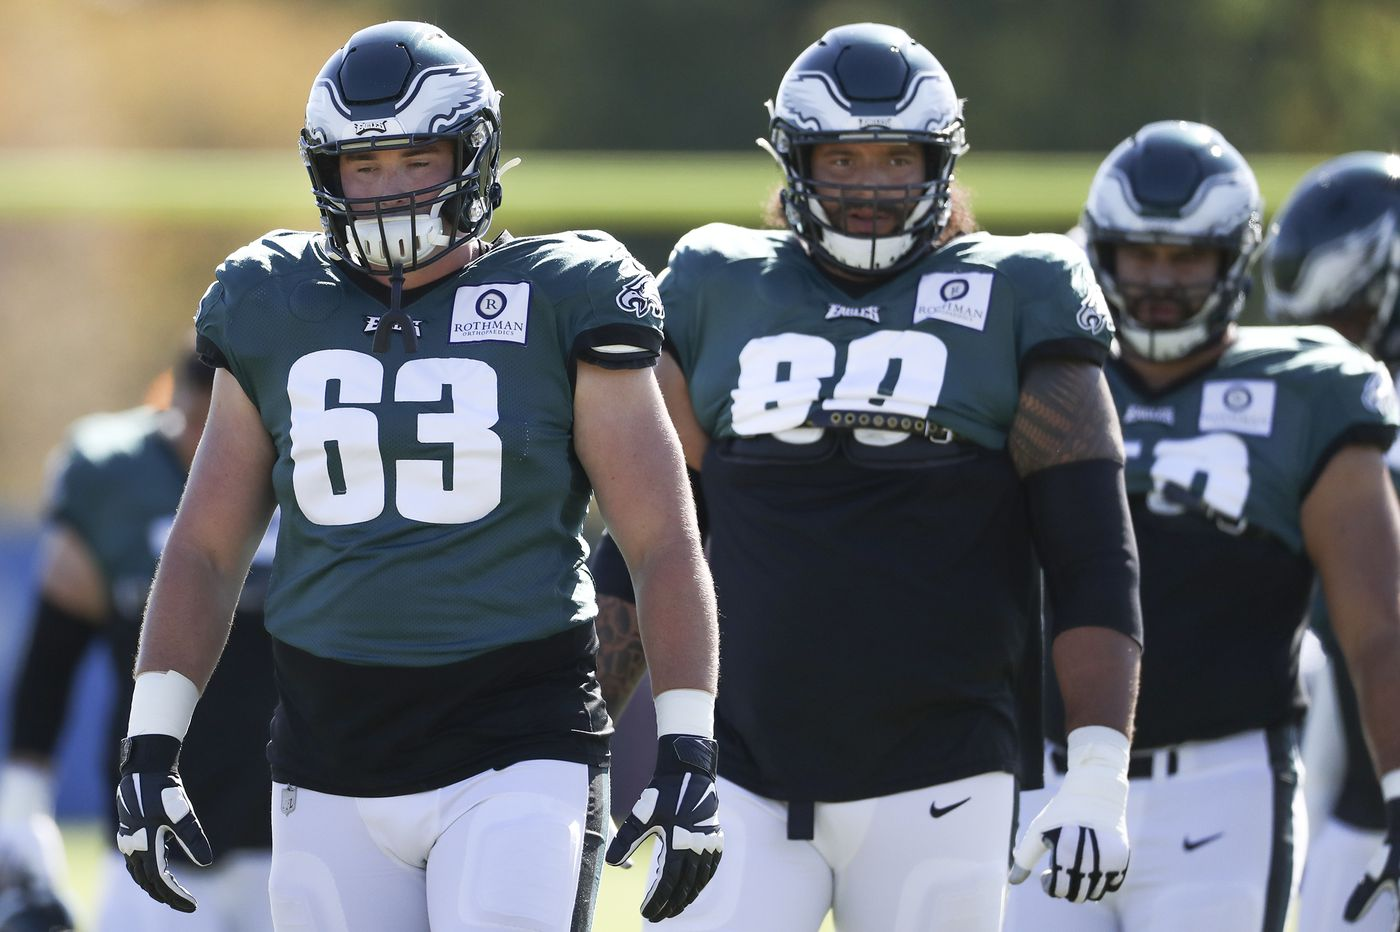 Eagles rookie Jack Driscoll will get the start at right tackle as O-line shuffling continues